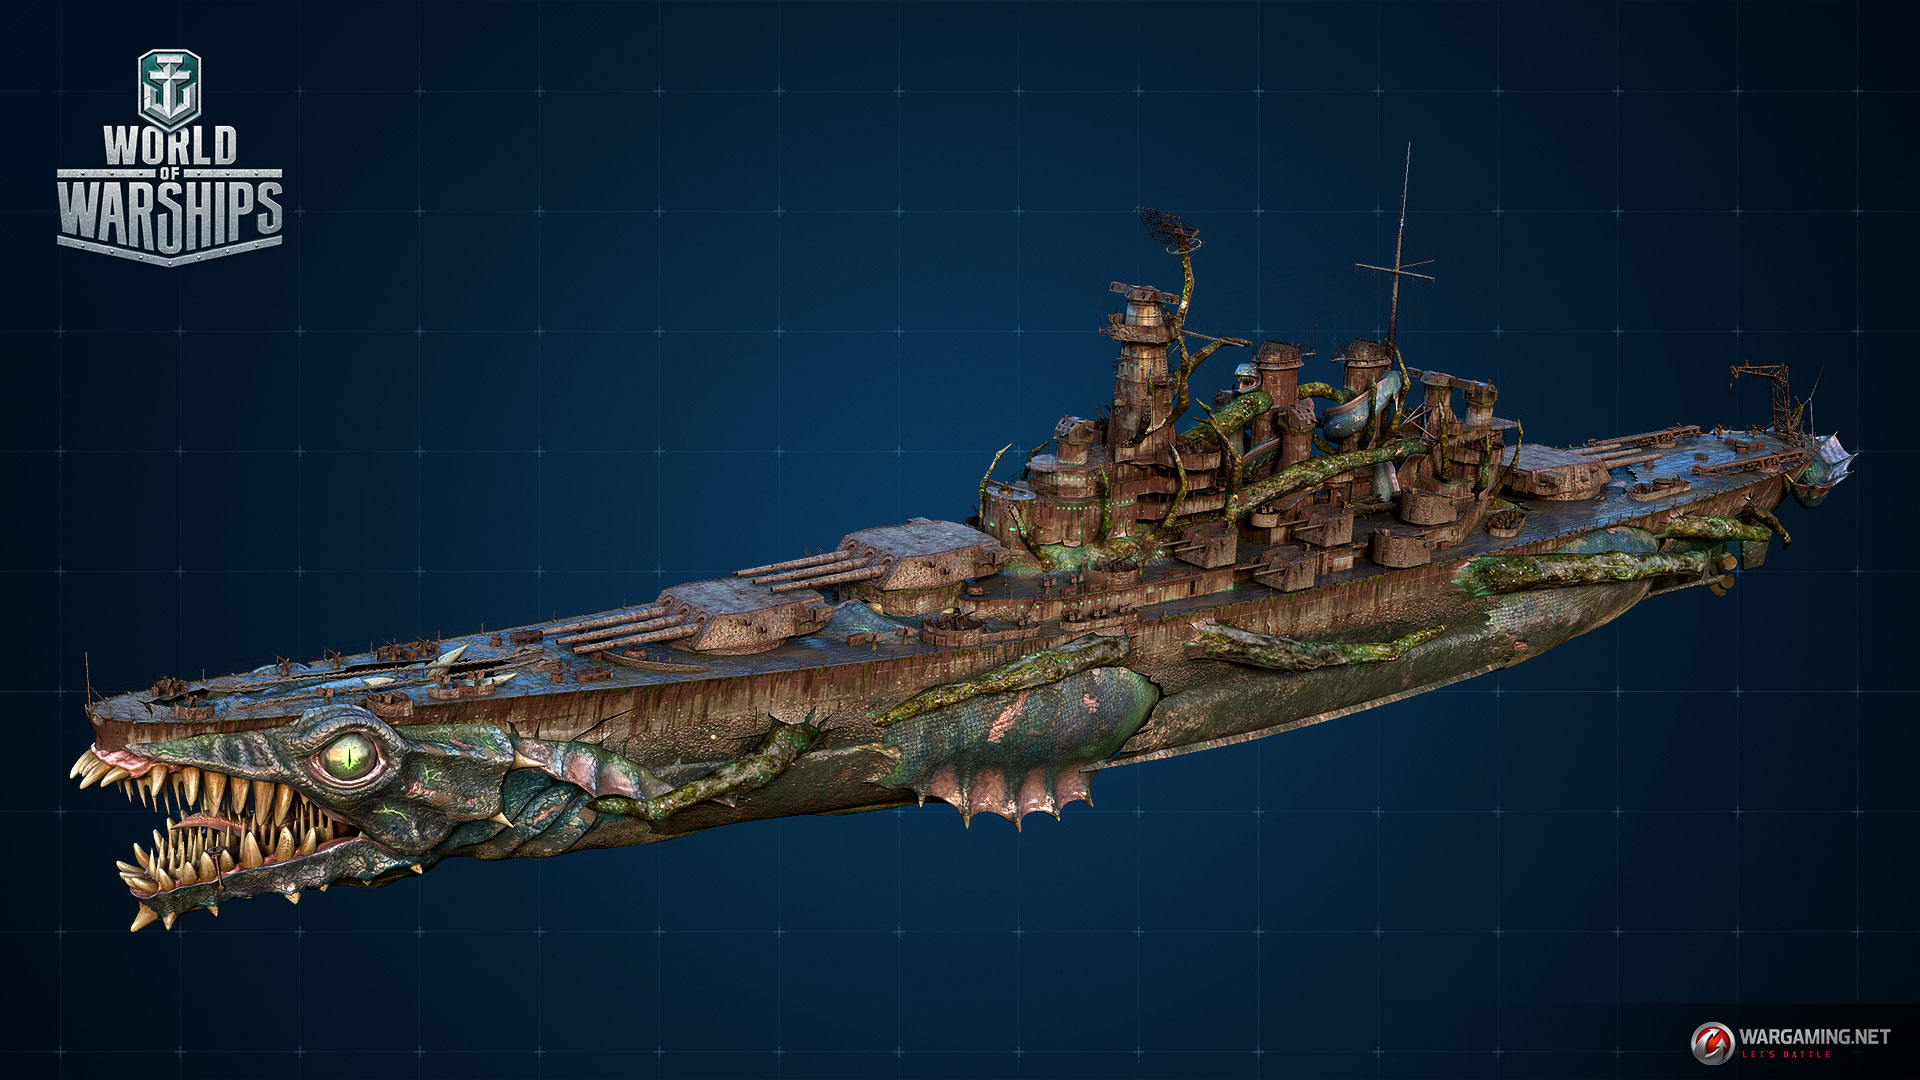 Drive A Tank >> World of Warships: Submarines Pictures